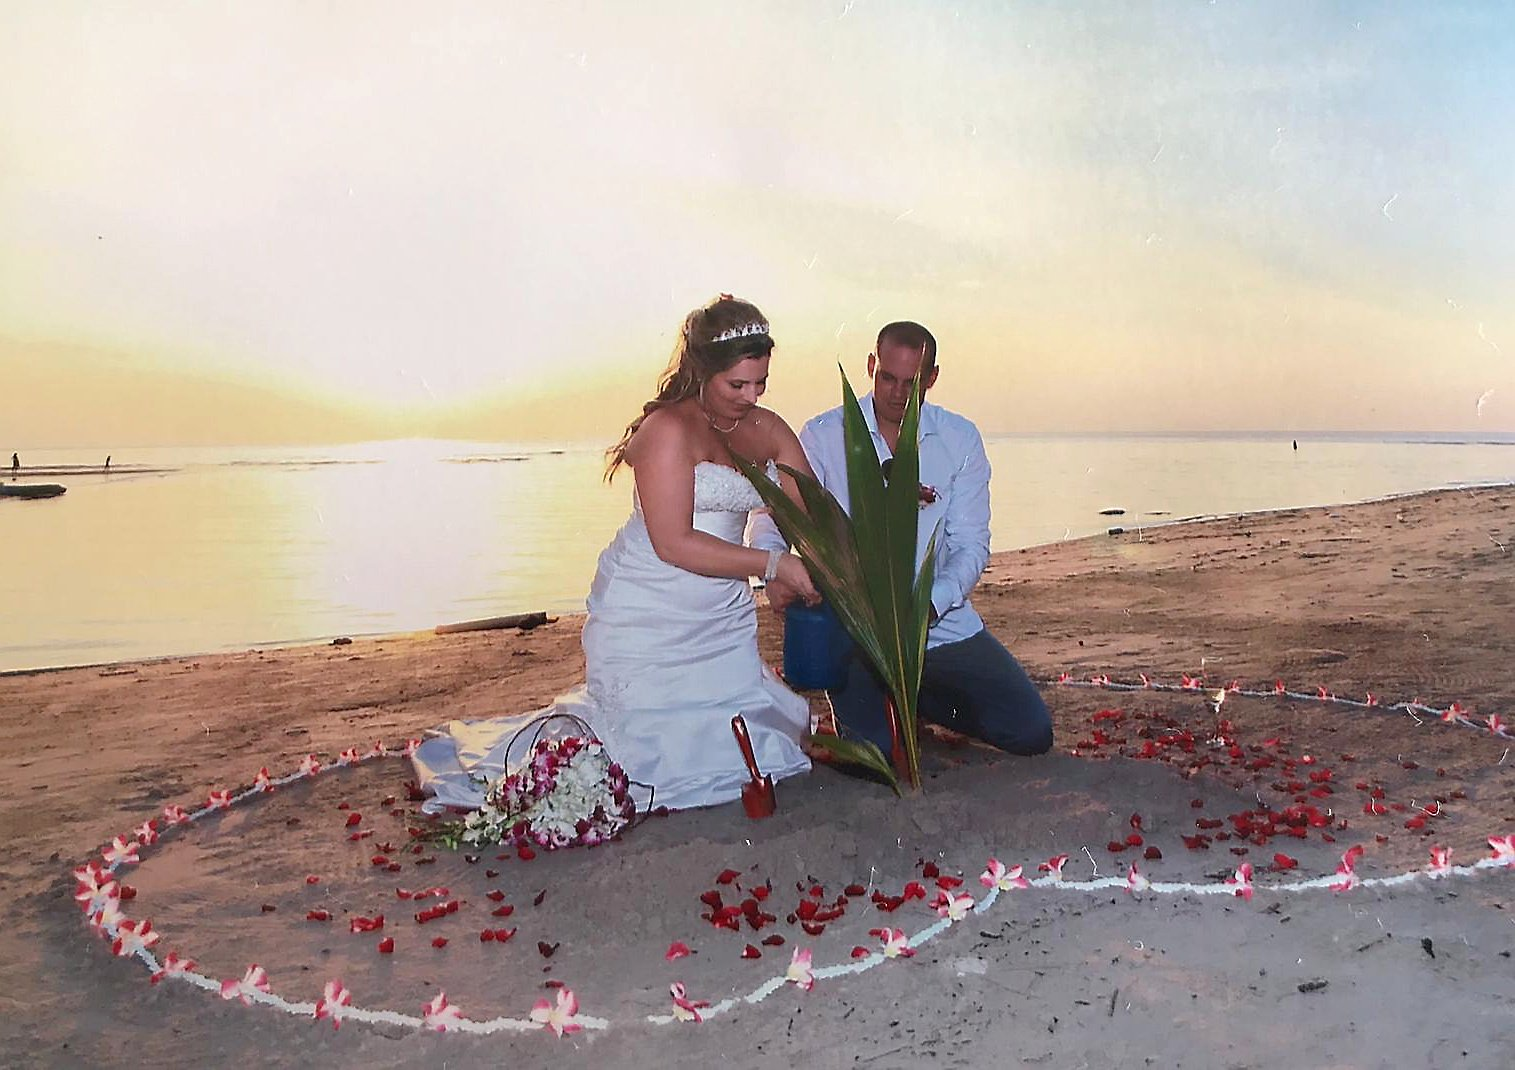 Bride almost lost leg on honeymoon after being hit by coconut